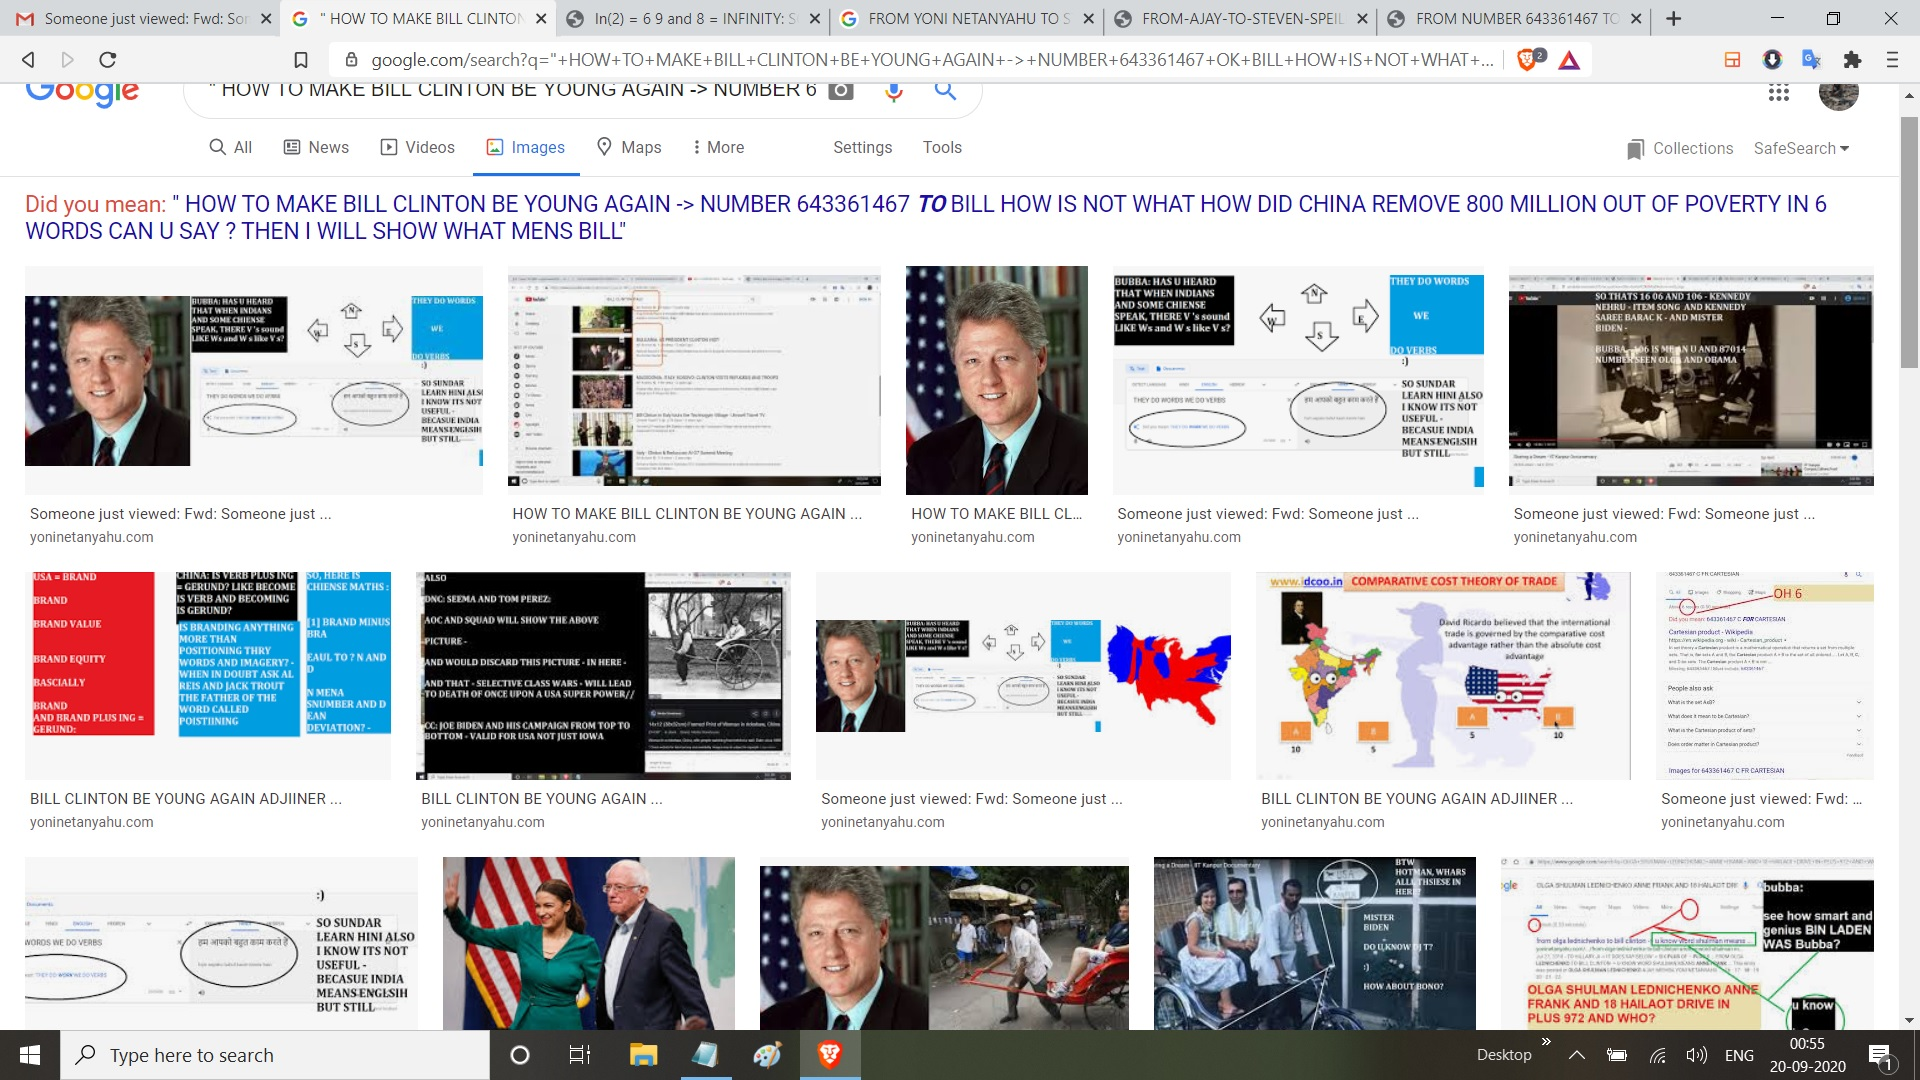 HOW TO MAKE BILL CLINTON BE YOUNG AGAIN NUMBER 643361467 OK BILL HOW IS NOT WHAT HOW DID CHINA REMOVE 800 MILLION OUT OF POVERTY IN 6 WORDS CAN U SAY THEN I WILL SHOW WHAT MENS BILL